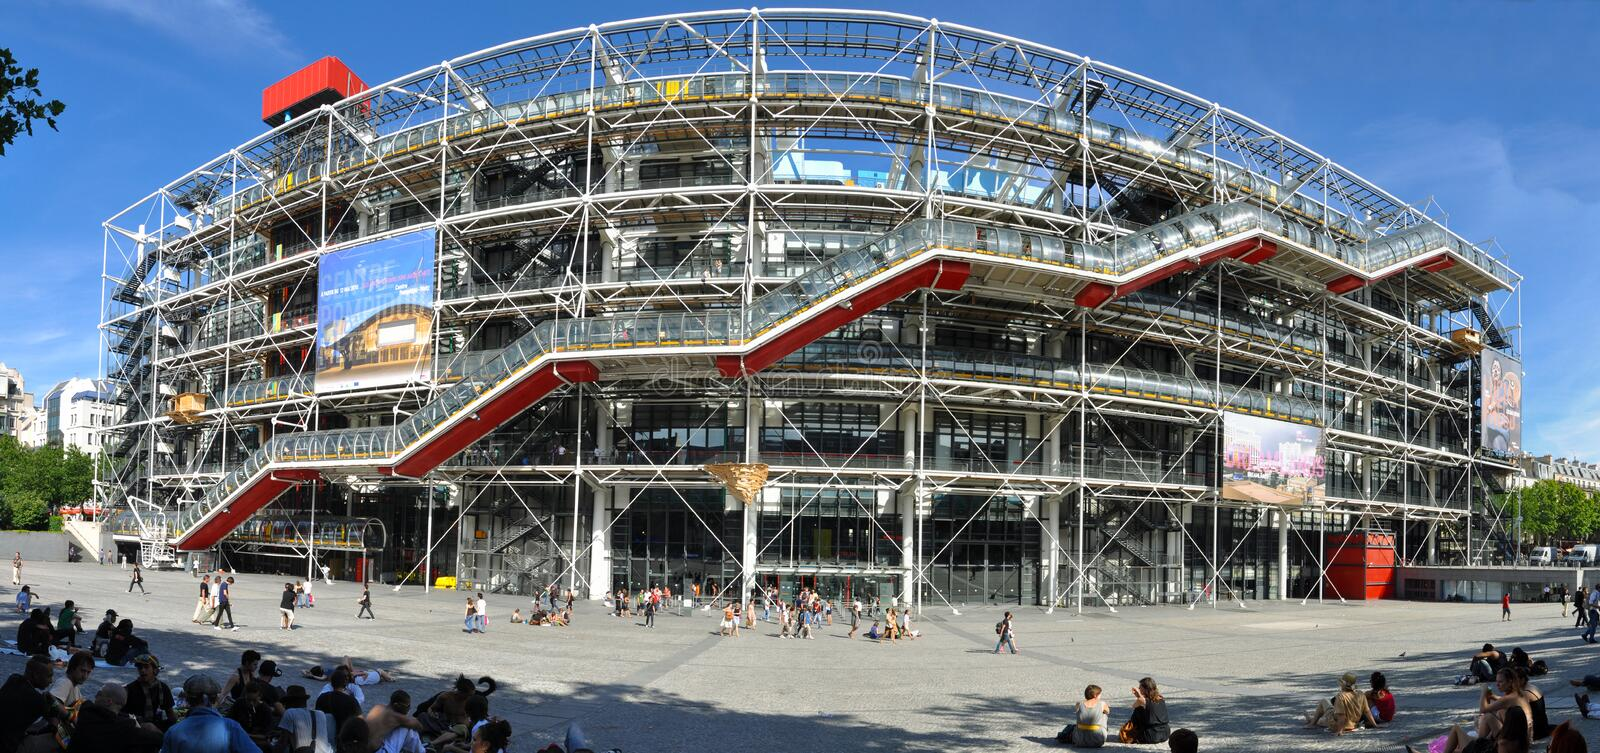 Centre de Pompidou. Paris, France - July 17, 2010:The cultural center and museum, Centre de Pompidou in Paris, France. The place is notable for its unusual stock photos